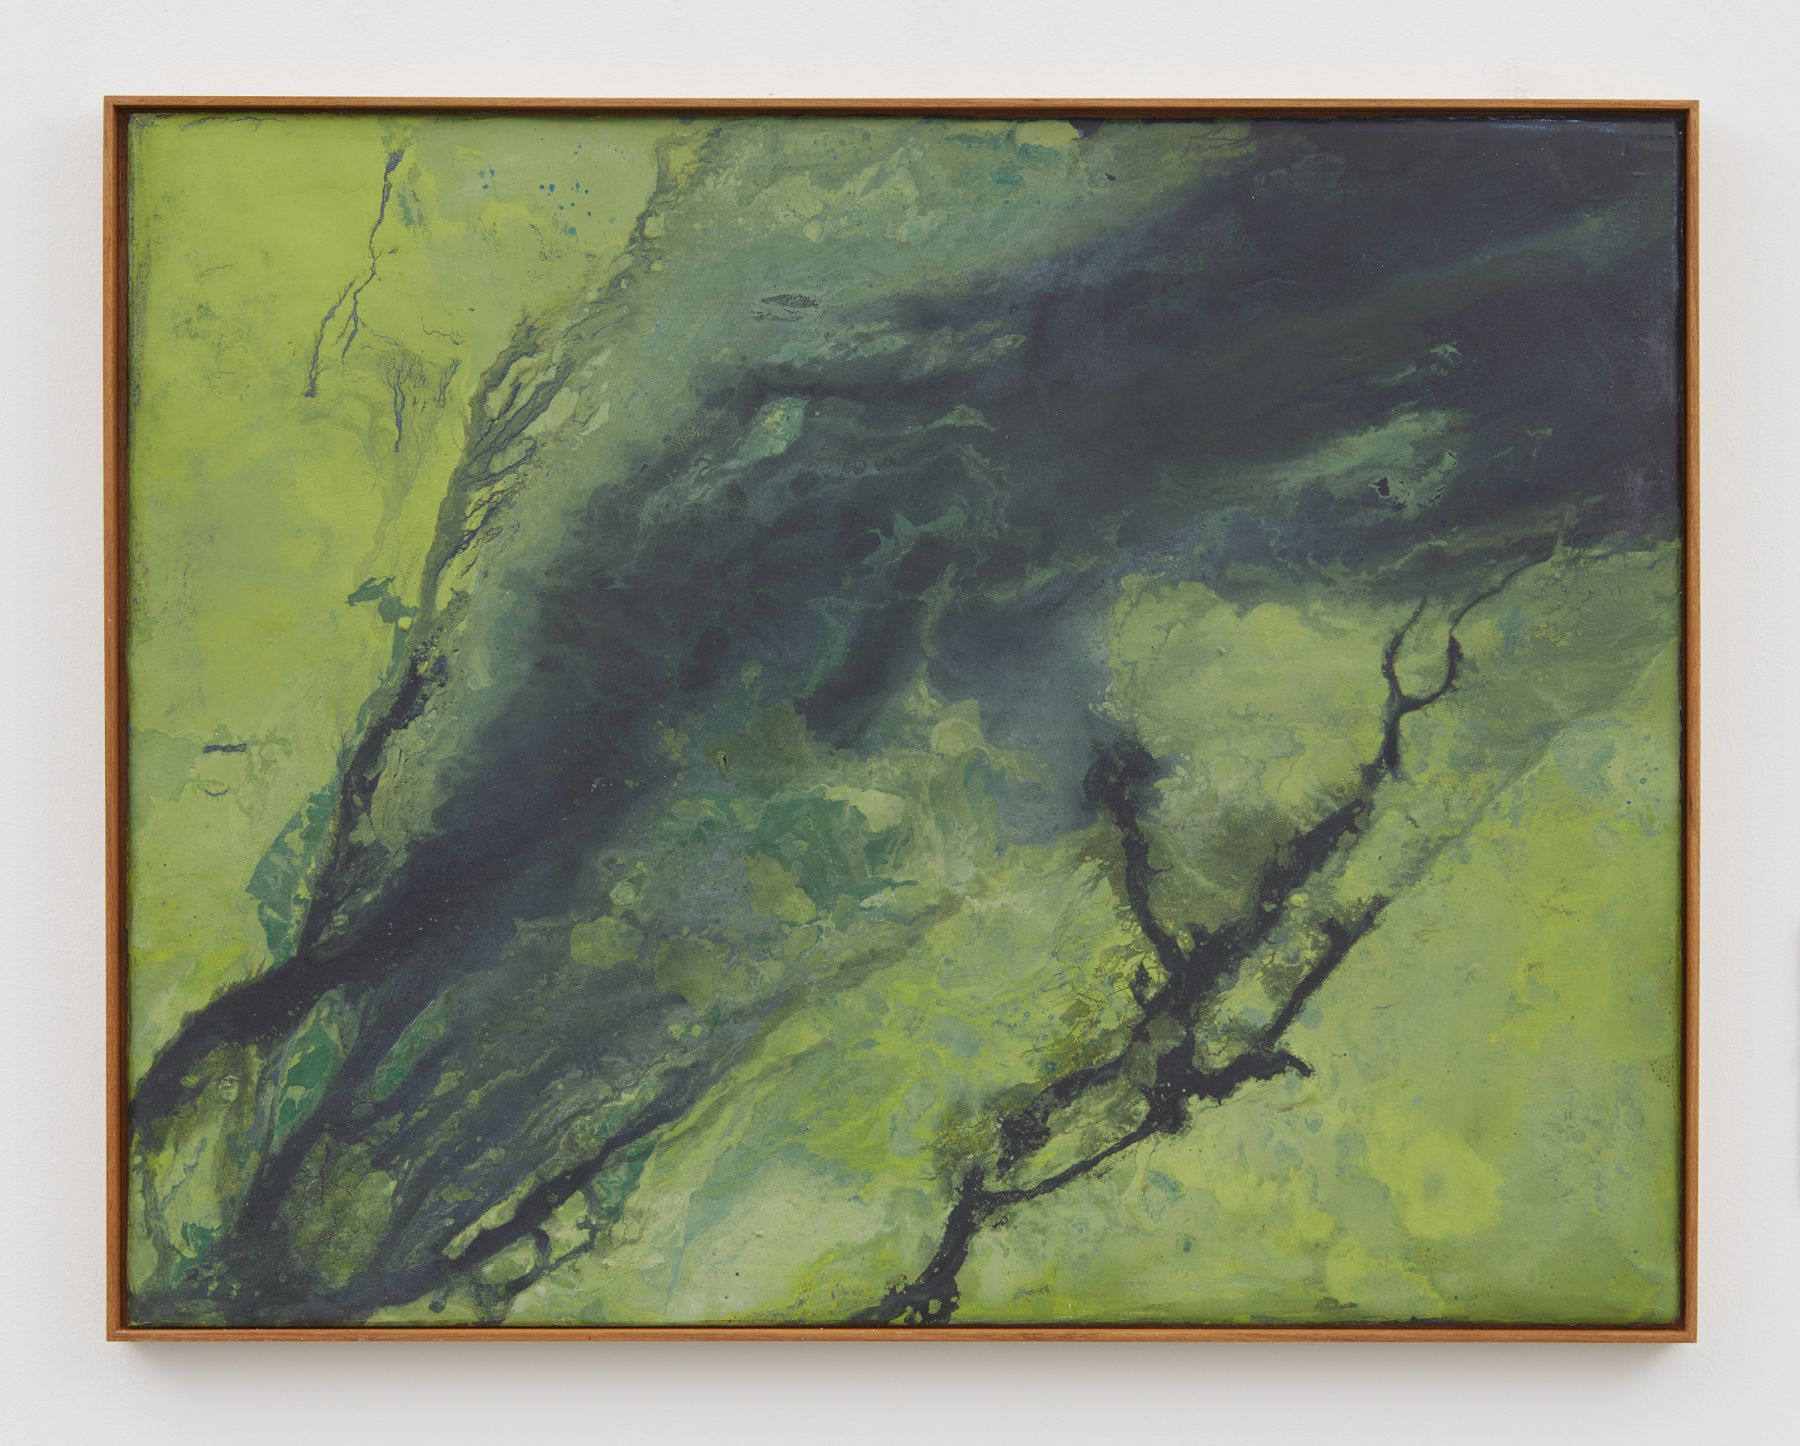 a fresco of a sea from overhead by thiago rocha pitta showing bacteria on the water